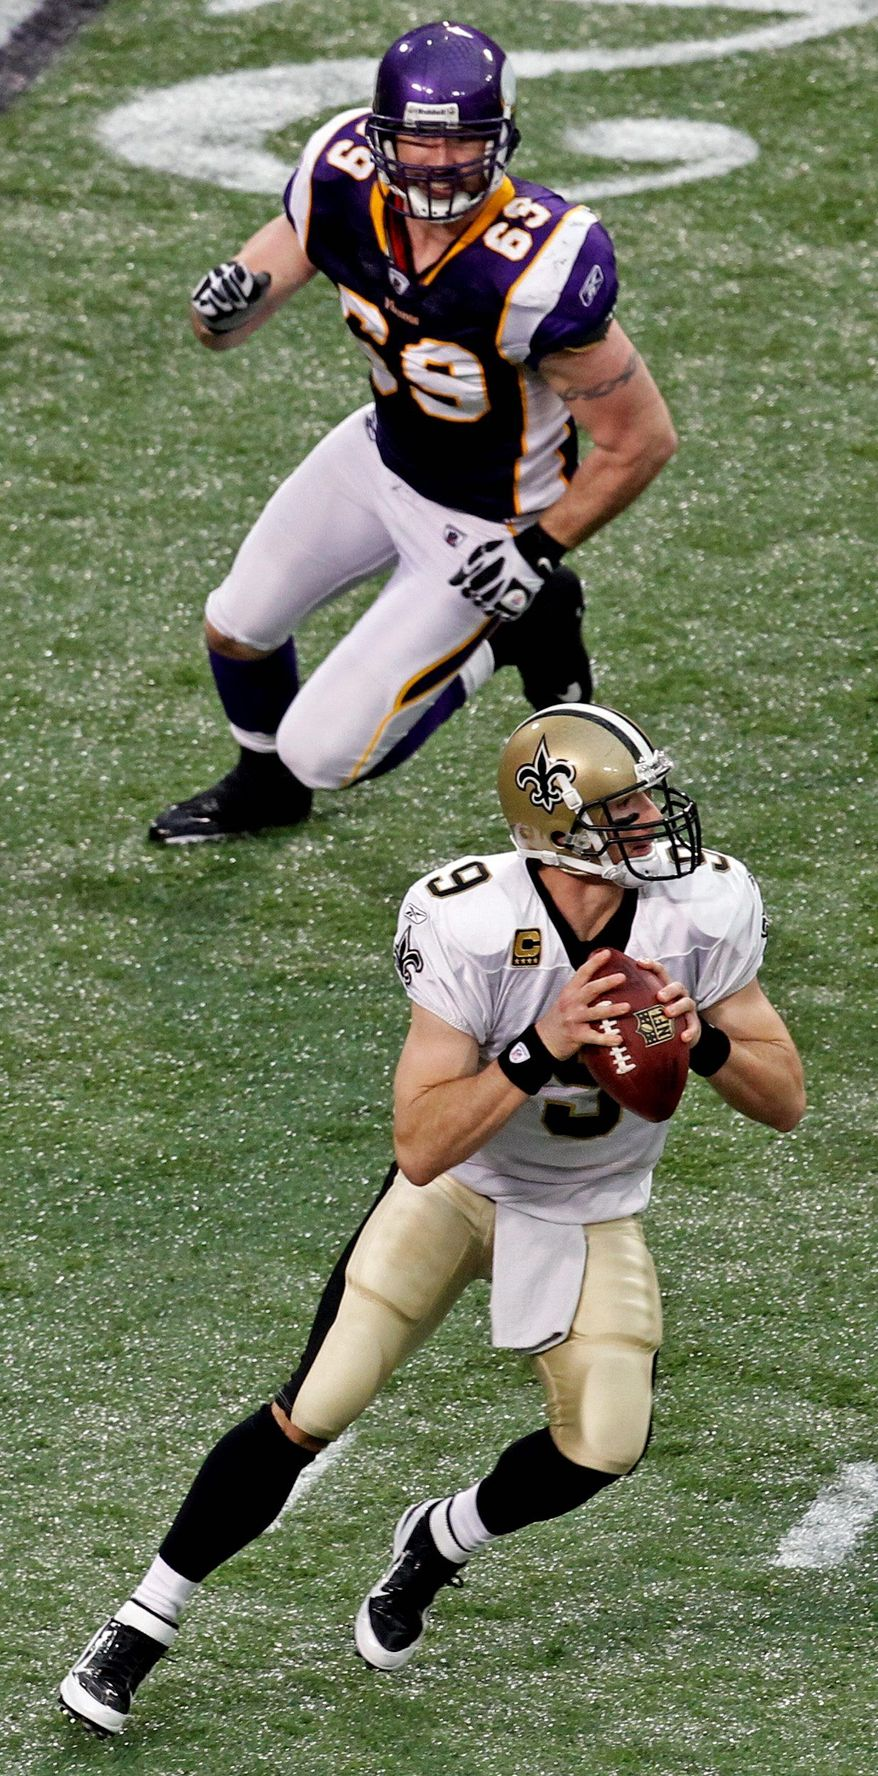 Minnesota defensive end Jared Allen, bearing down on New Orleans' Drew Brees, has 17.5 sacks entering Saturday's game at Washington. (Associated Press)